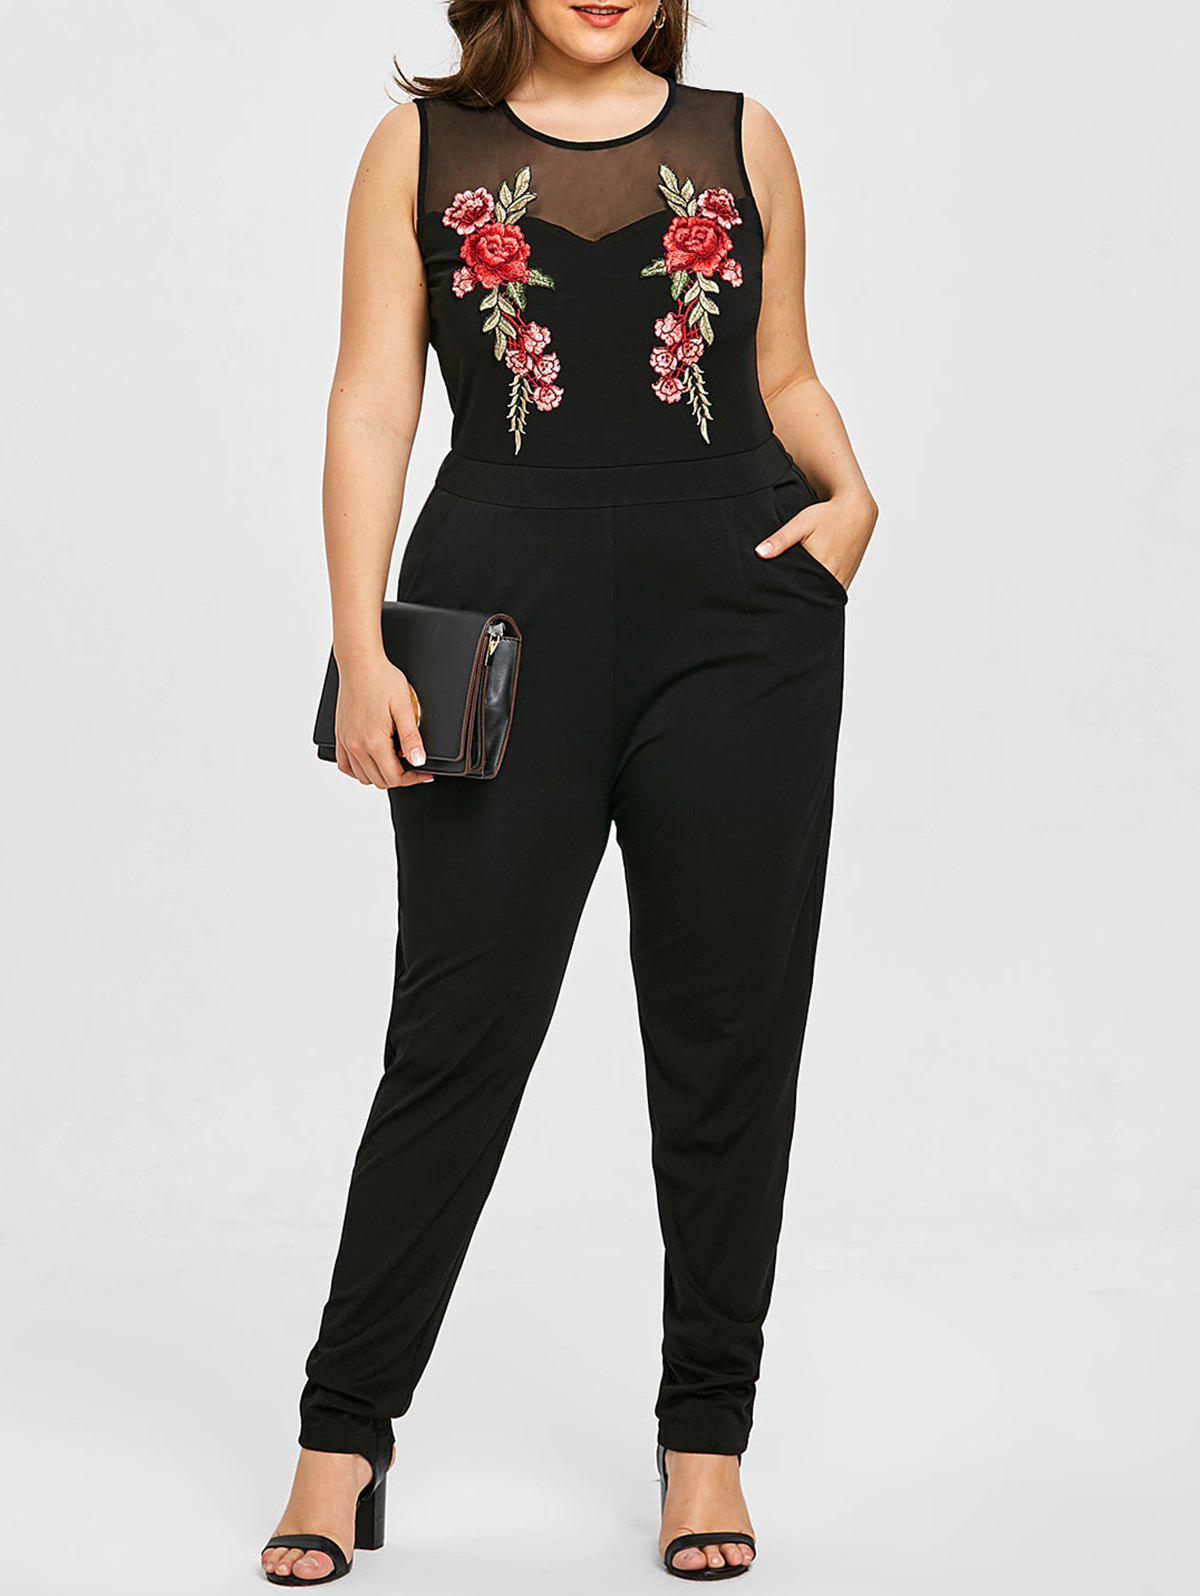 82205601750 Outfit Plus Size Sleeveless Mesh Yoke Embroidery Jumpsuit